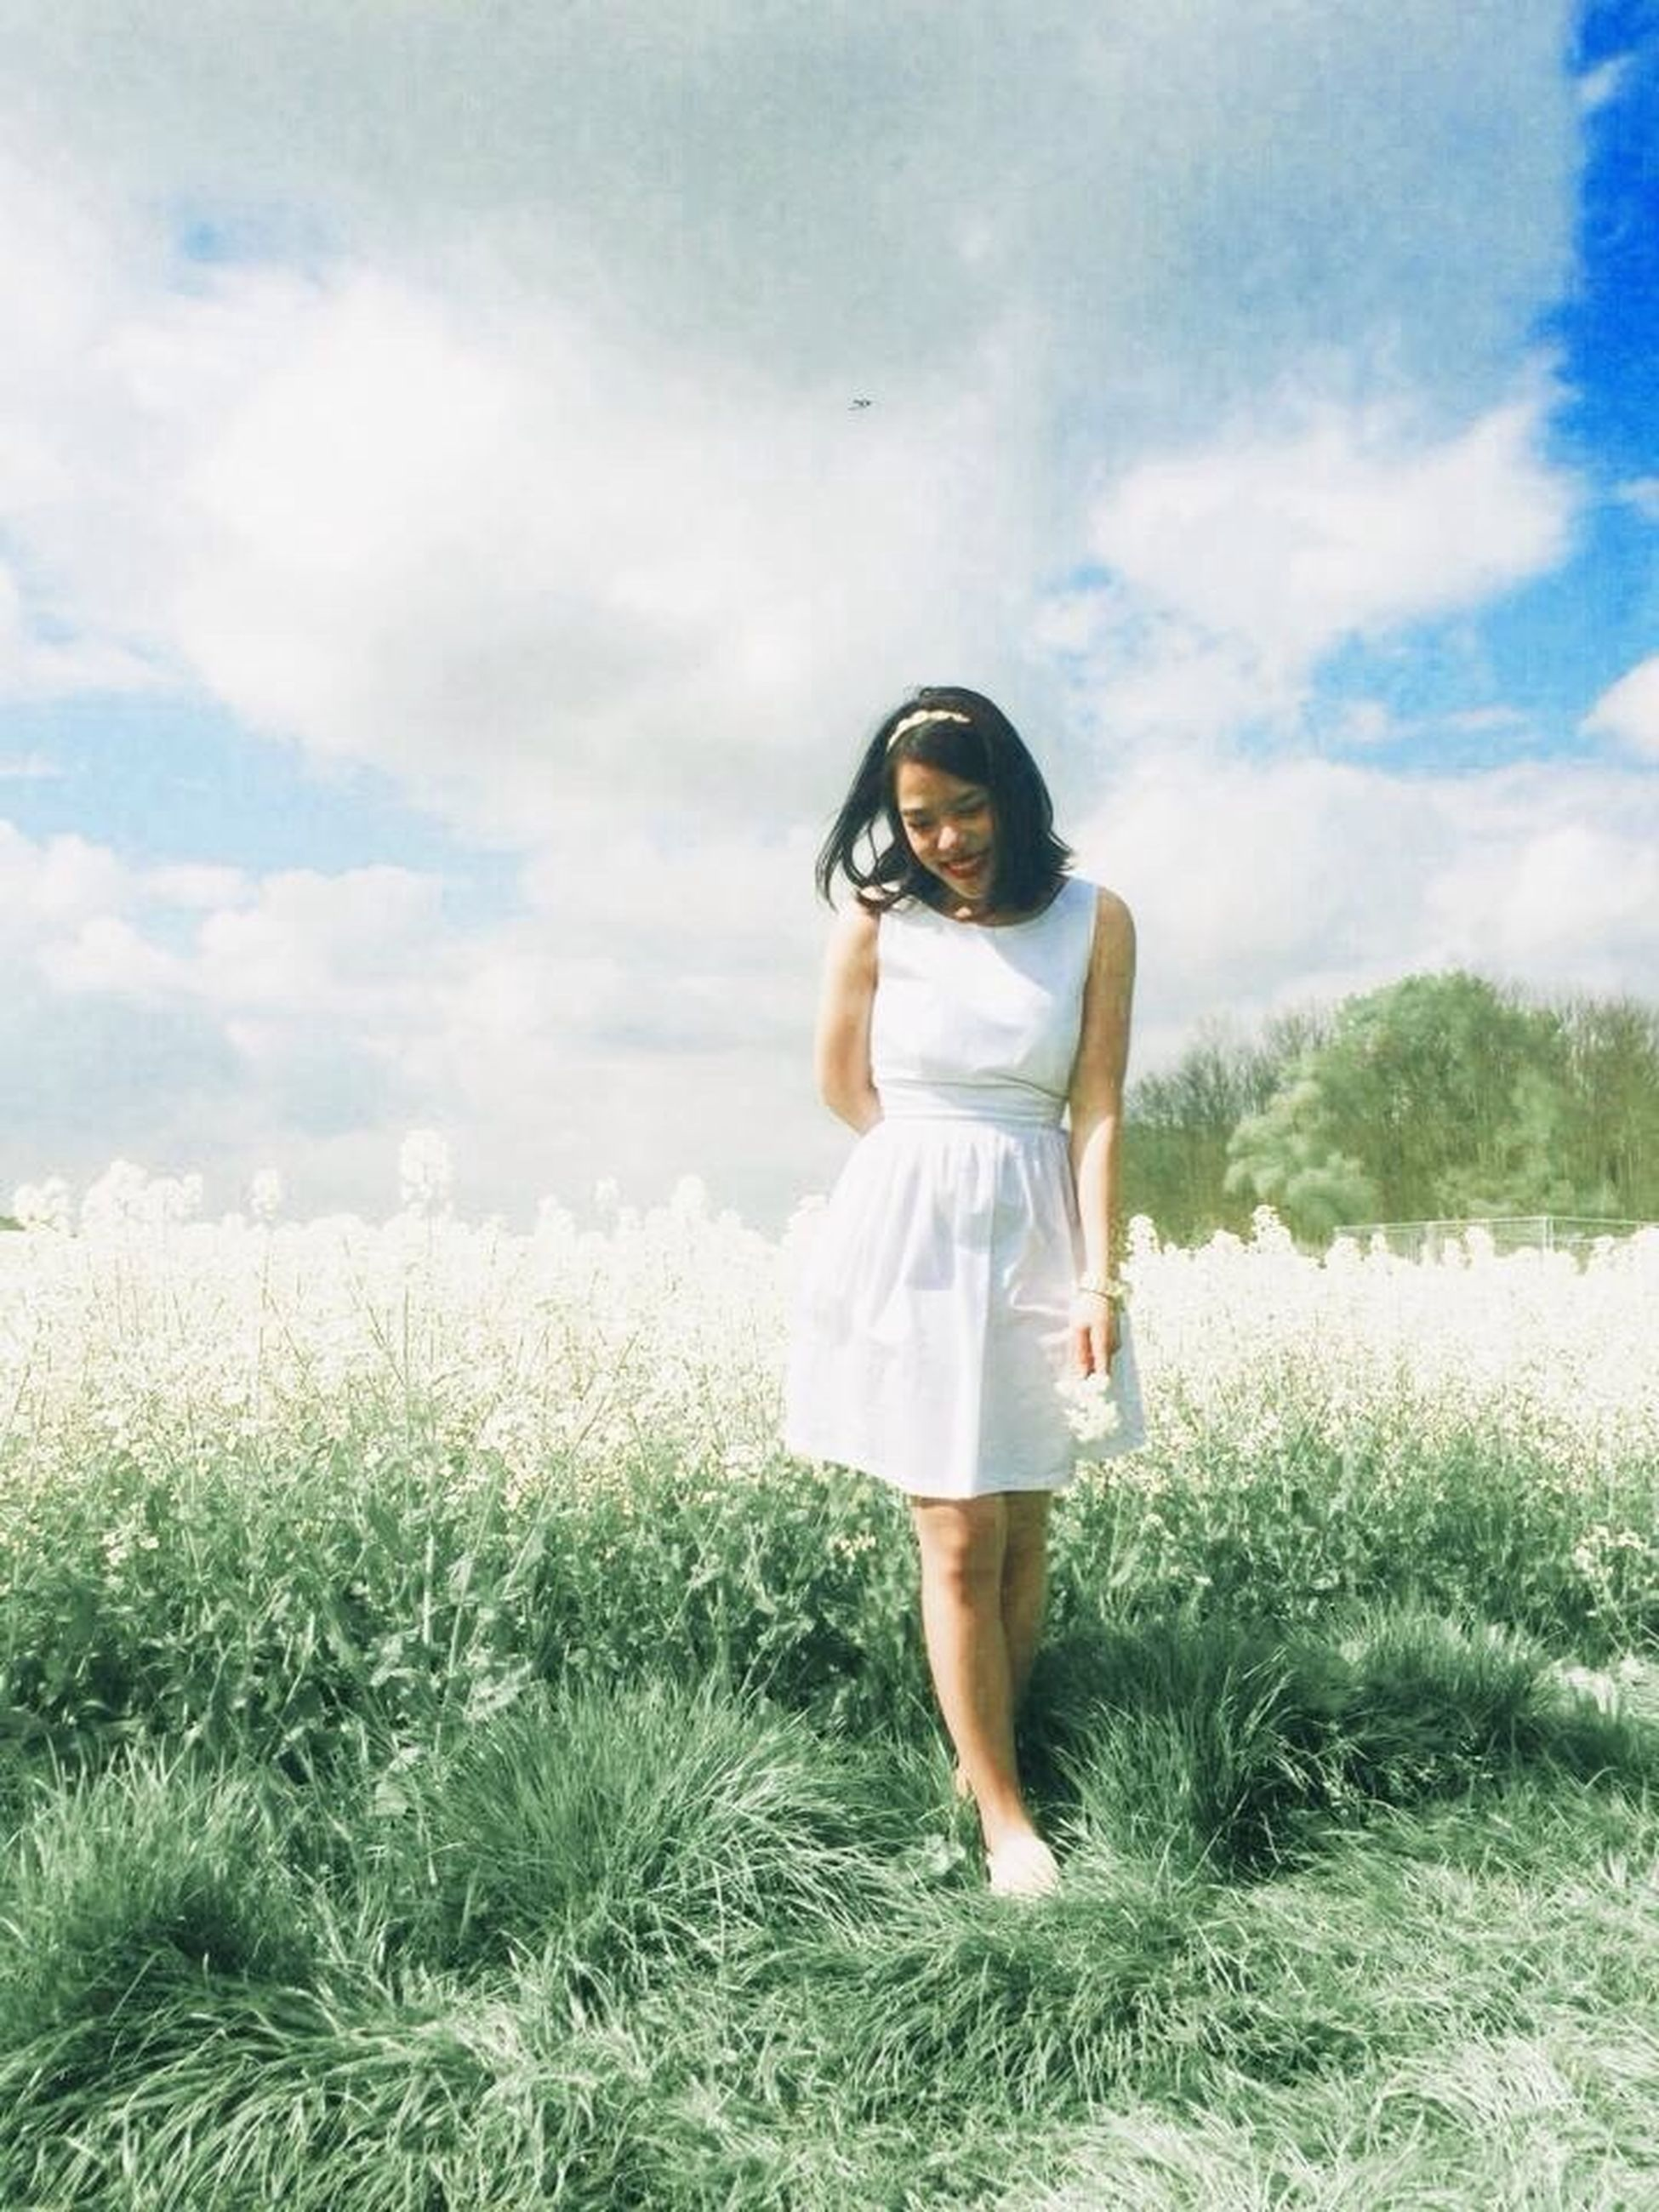 grass, casual clothing, lifestyles, full length, leisure activity, sky, field, person, standing, young adult, young women, plant, growth, nature, three quarter length, front view, grassy, cloud - sky